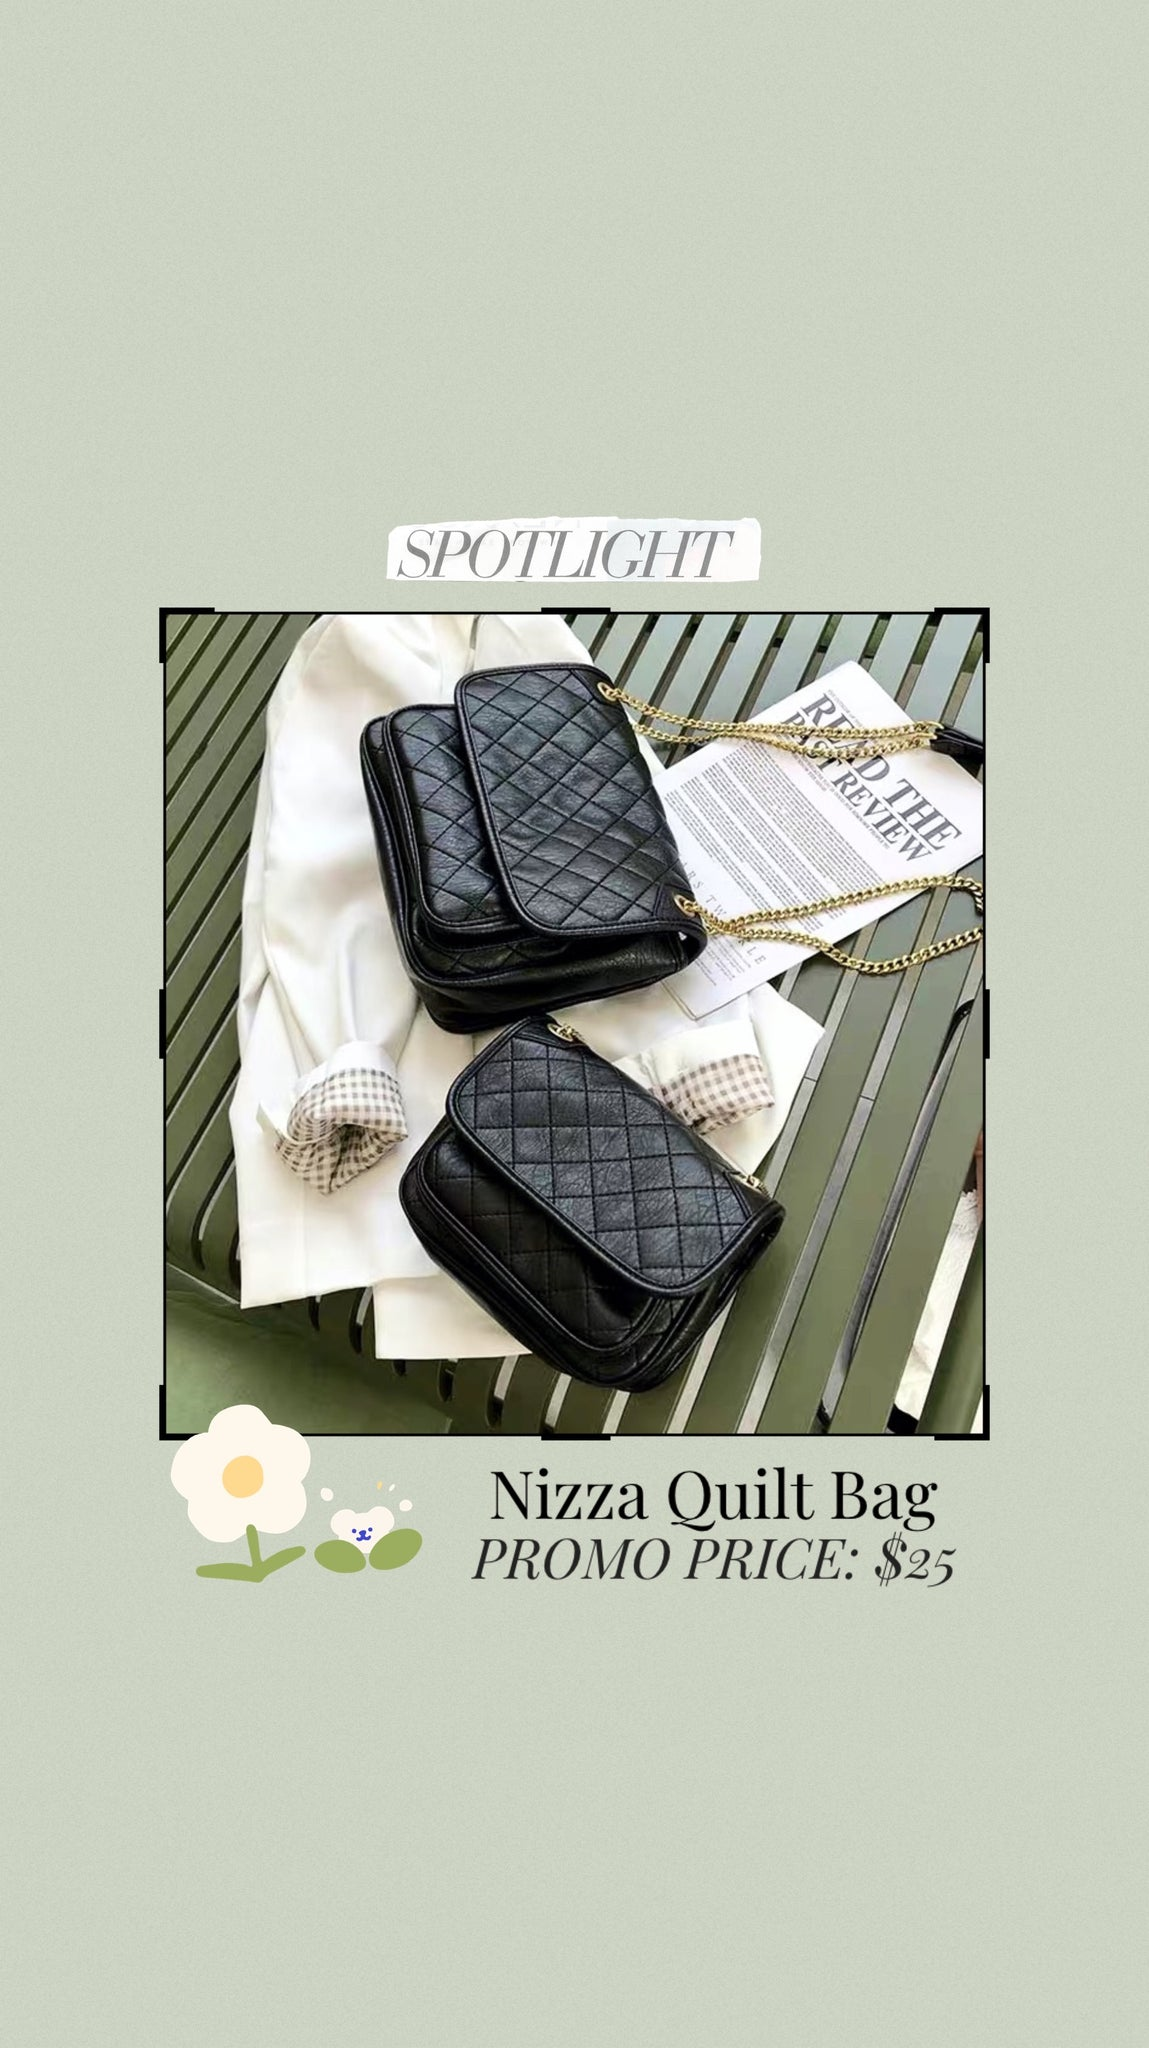 Nizza Quilt Bag